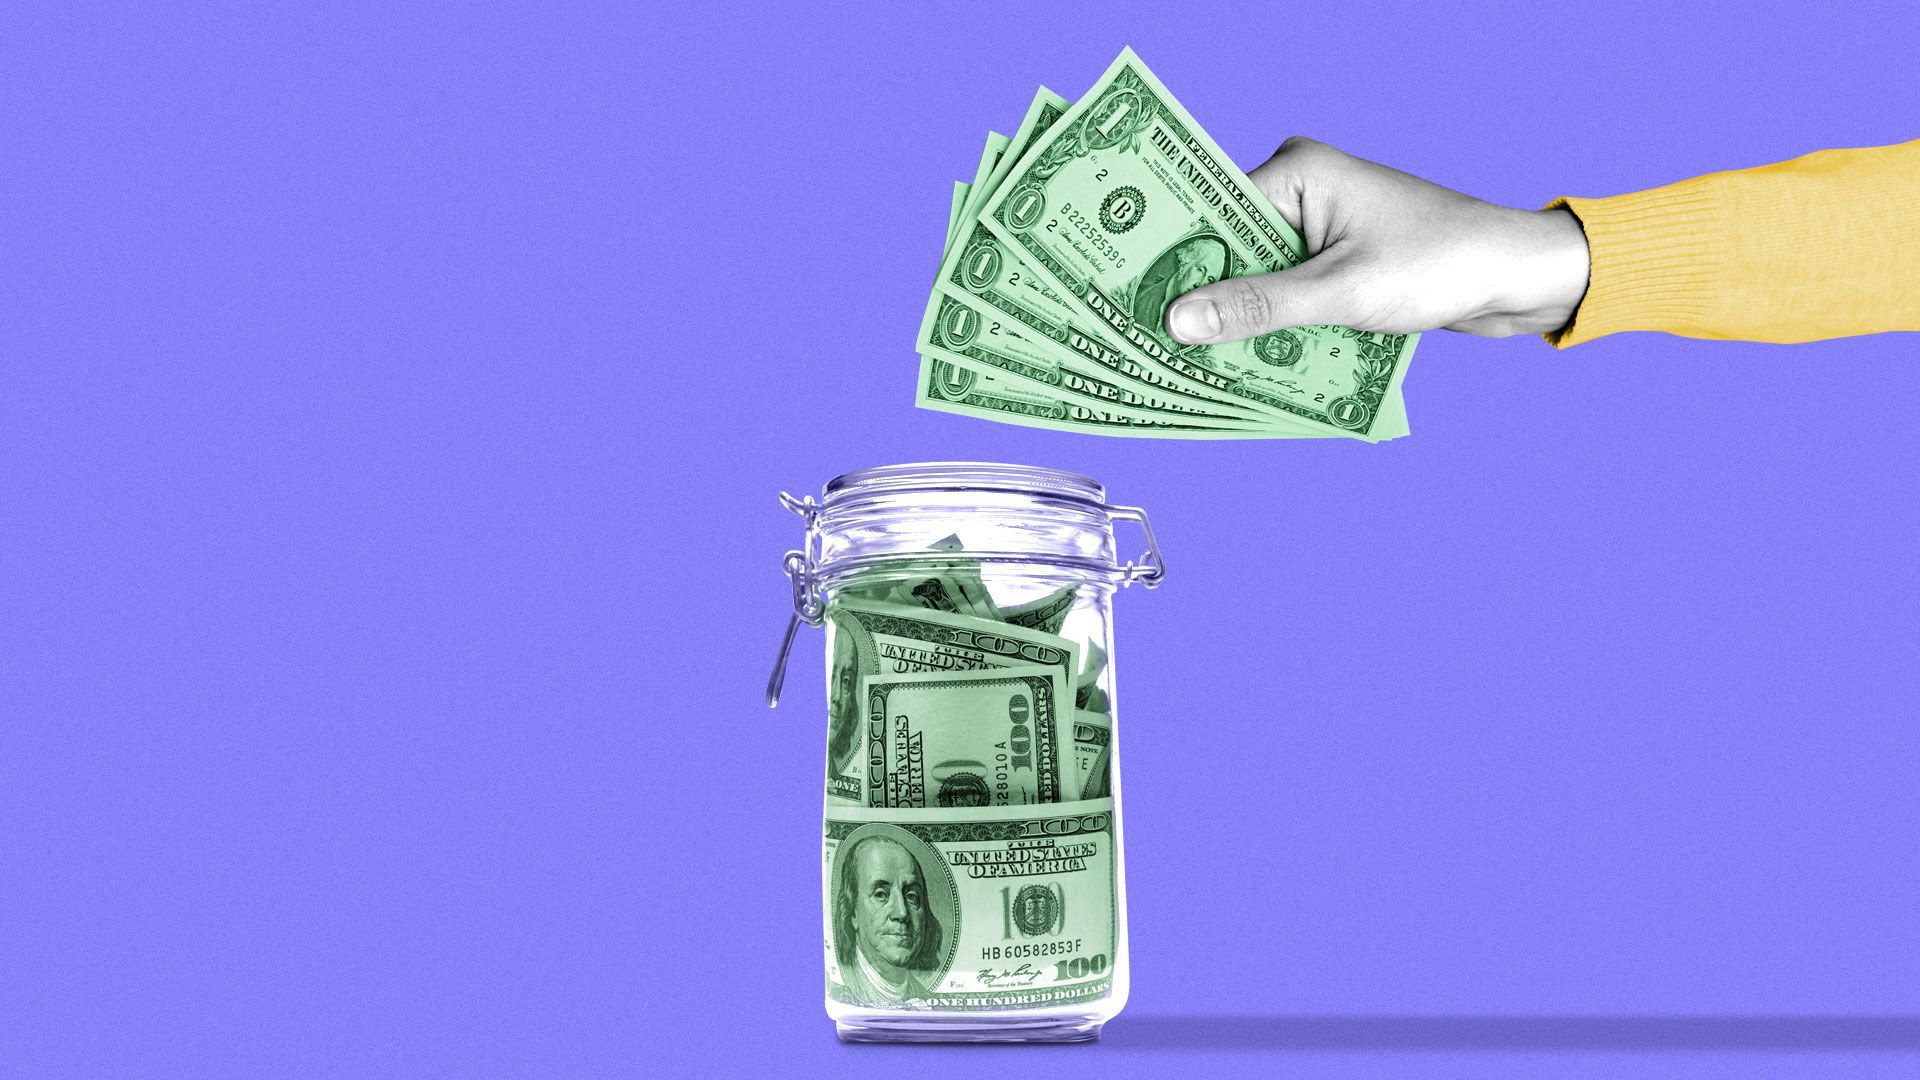 An illustration of a jar having money put into it